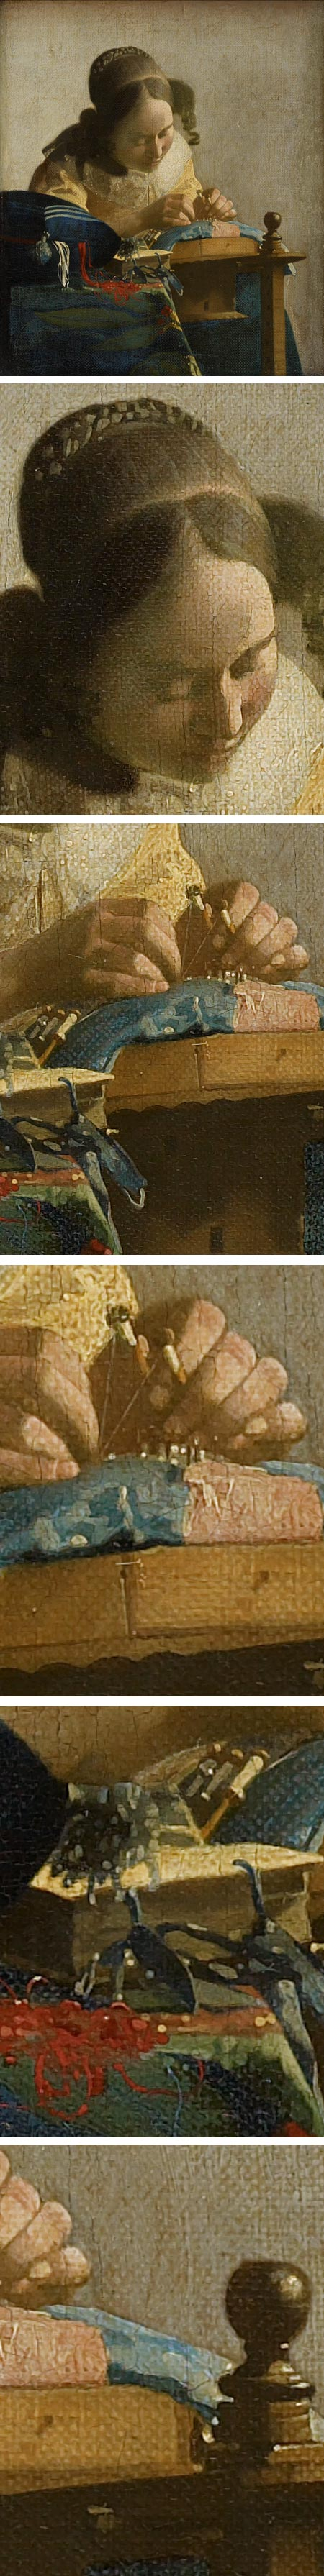 Vermeer's The Lacemaker